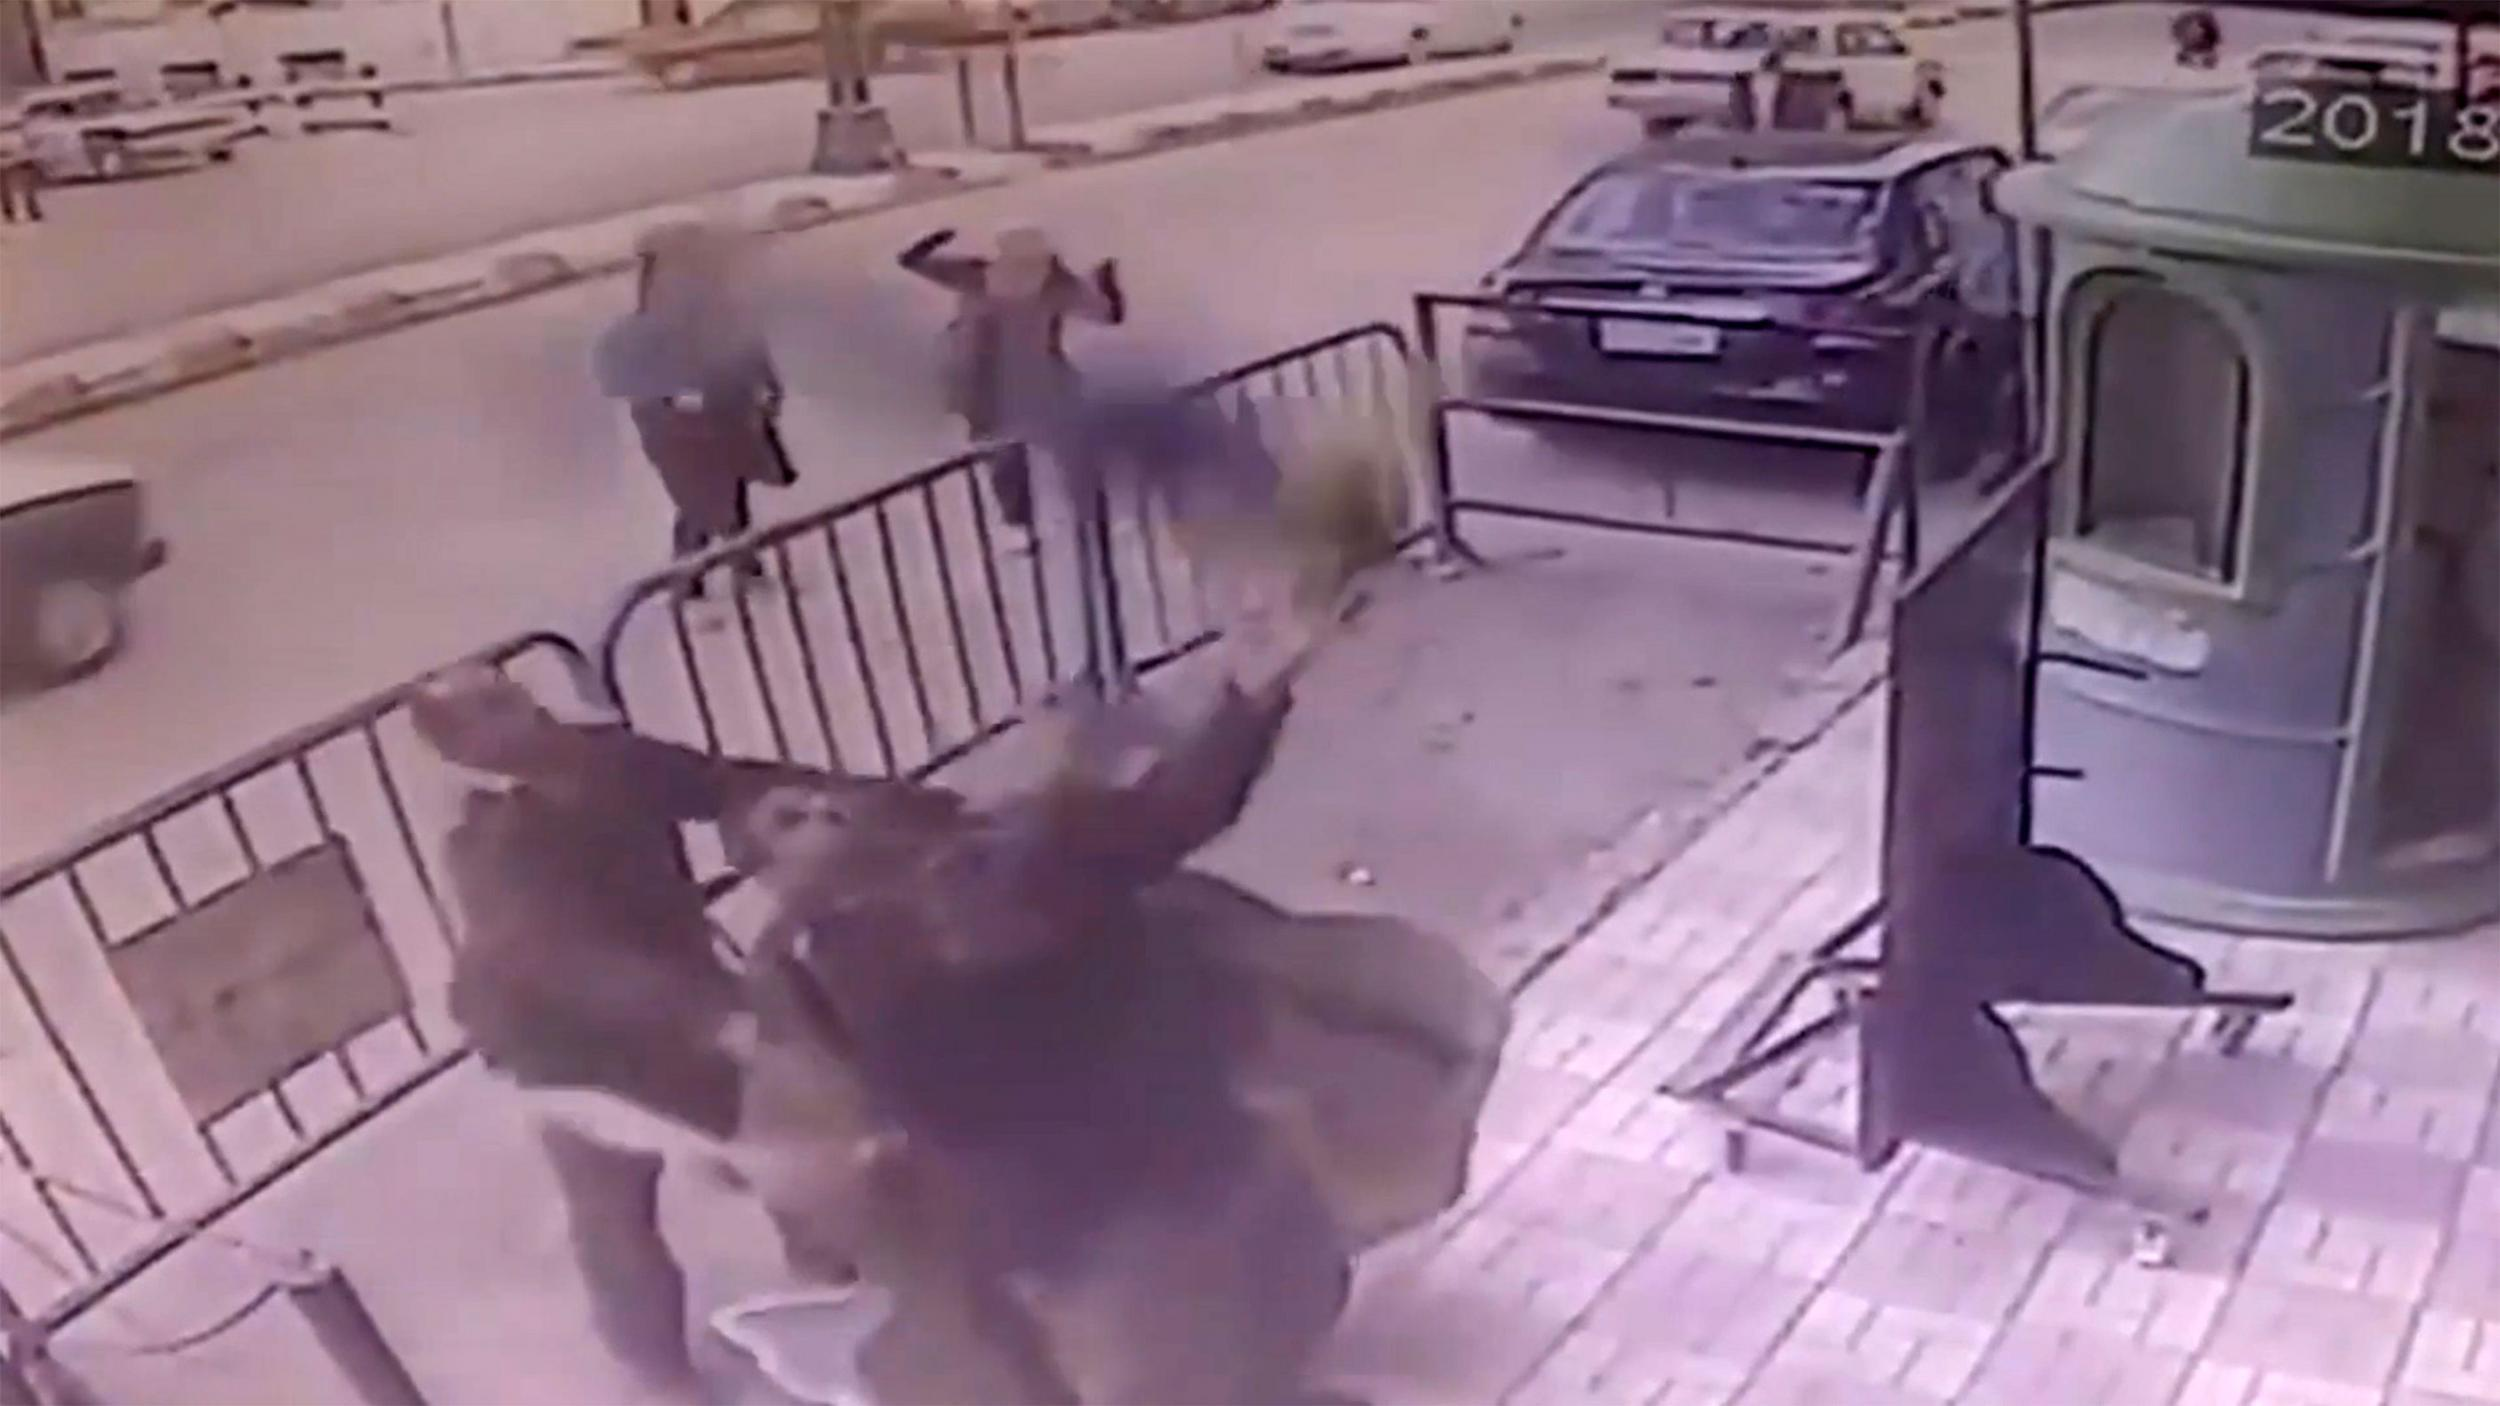 Dramatic moment Egyptian police officer saves falling child